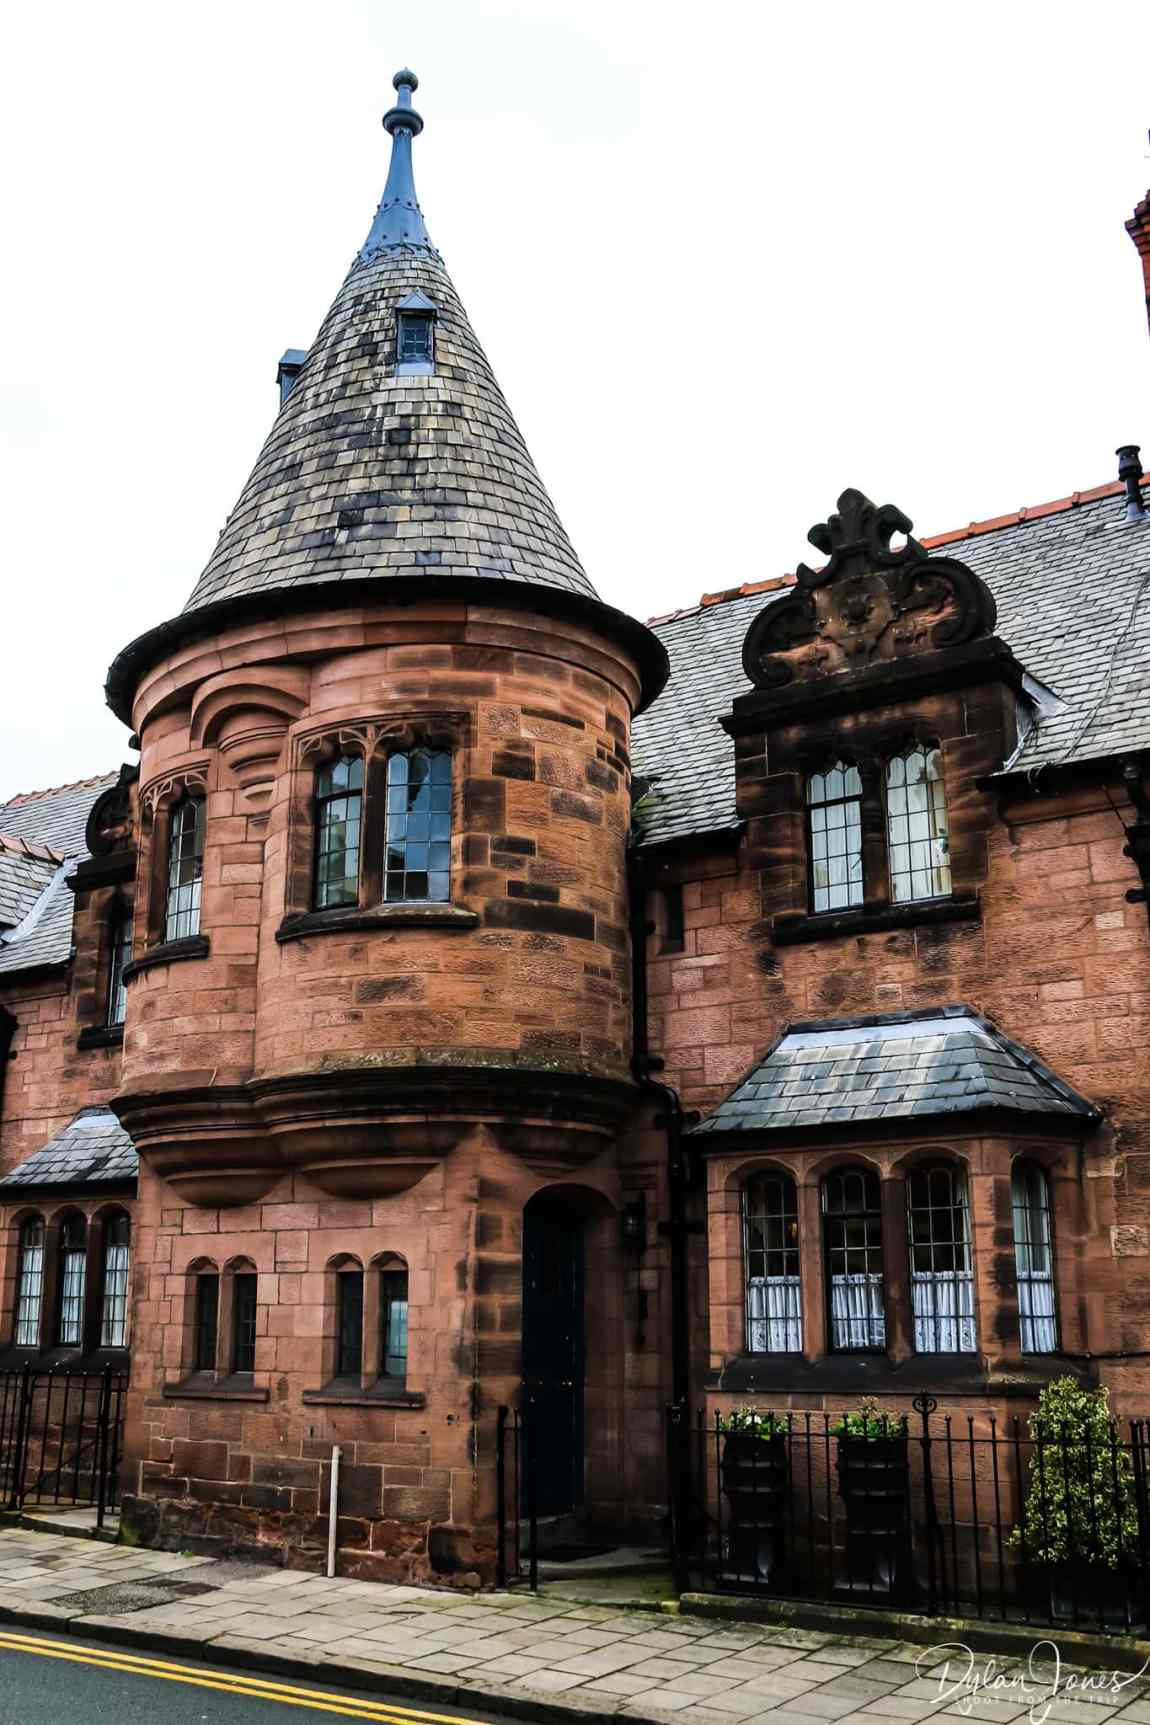 Stunning architecture in Chester